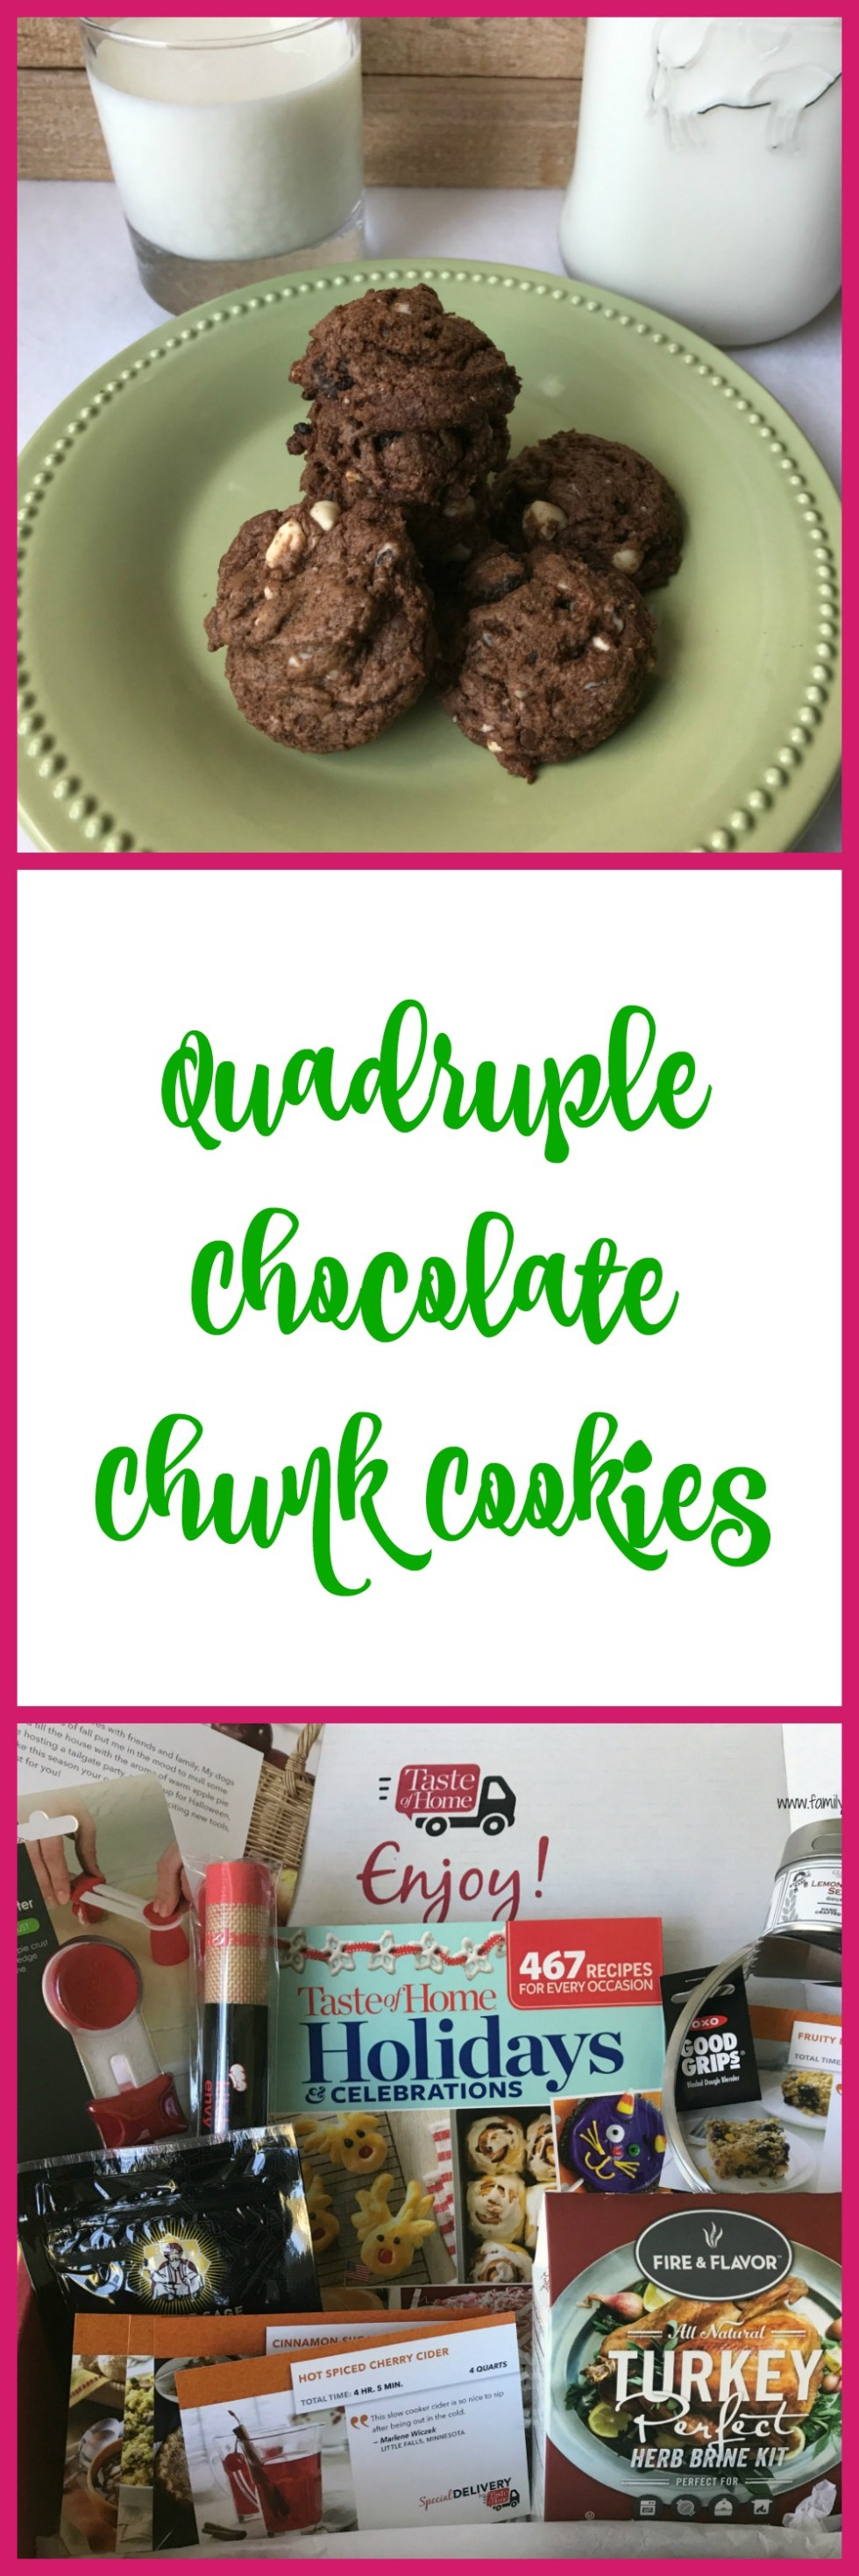 Quadruple Chocolate Chunk cookies are great for a lunchbox treat.